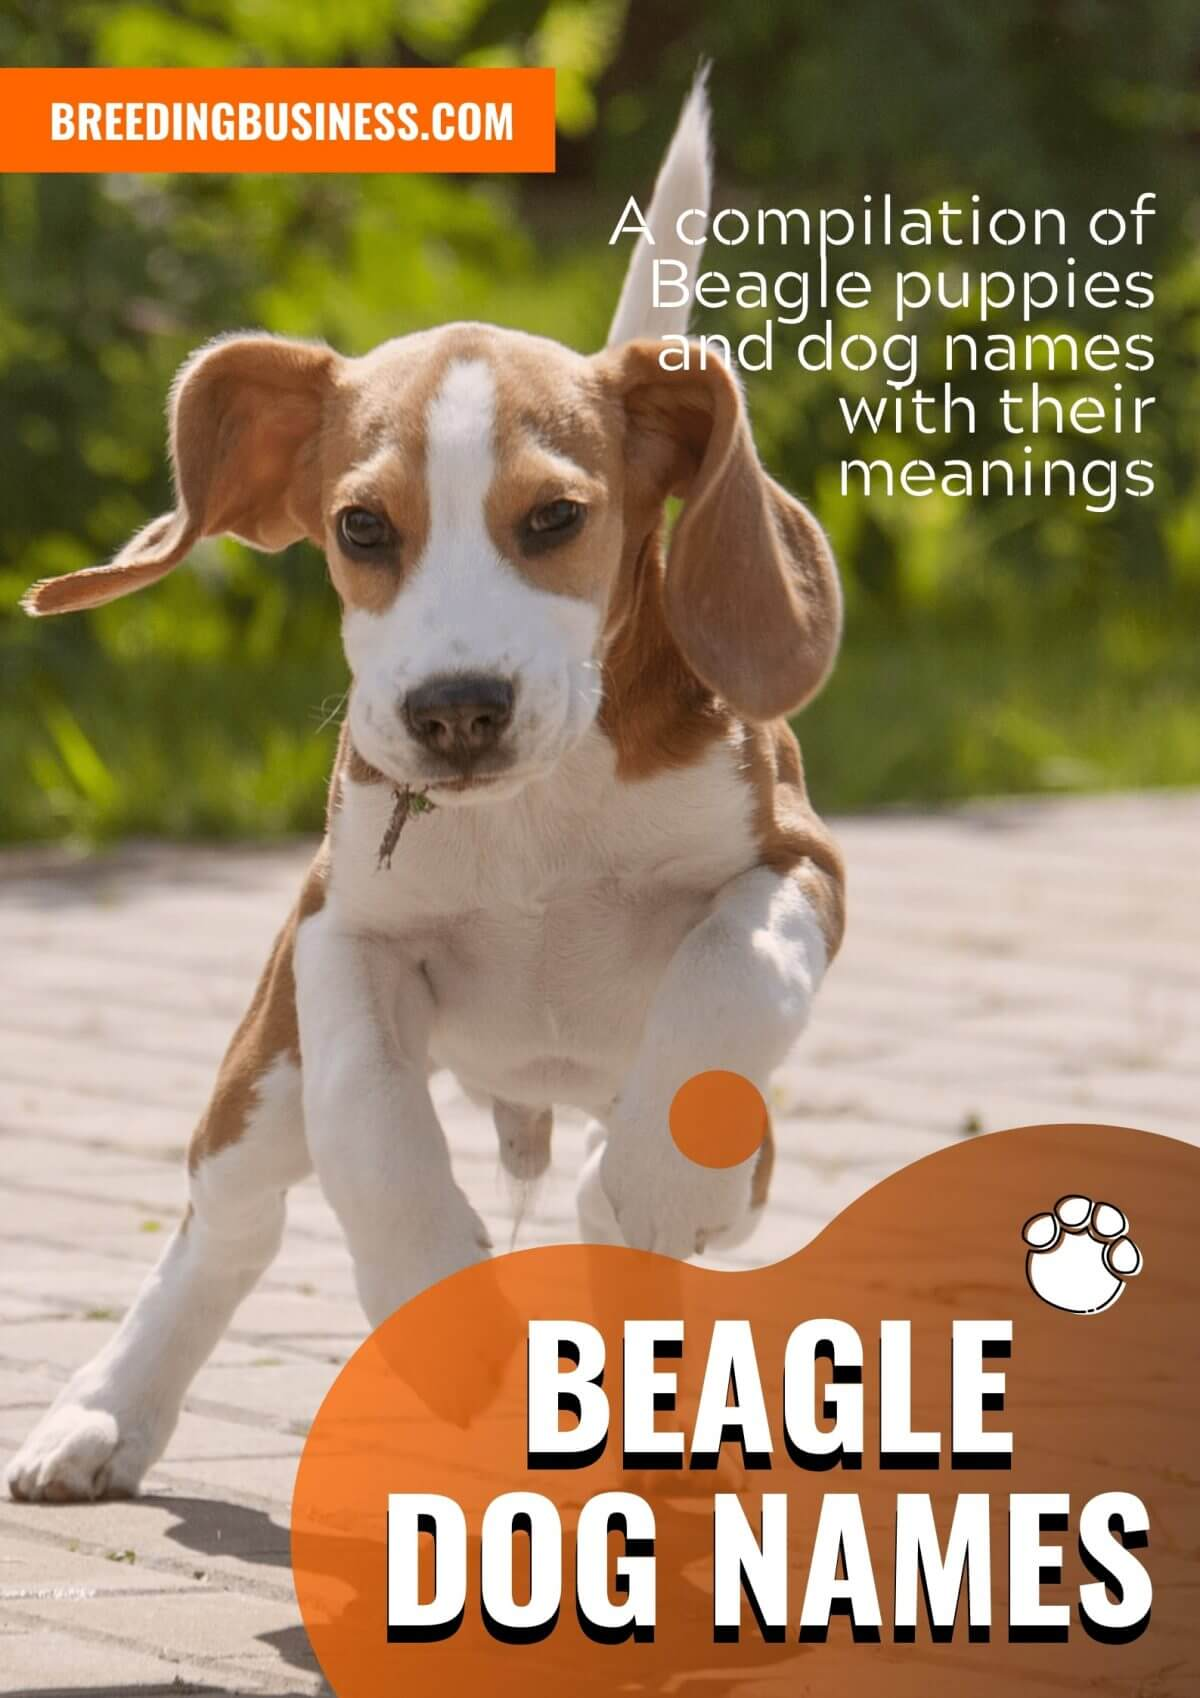 The best Beagle dog names!